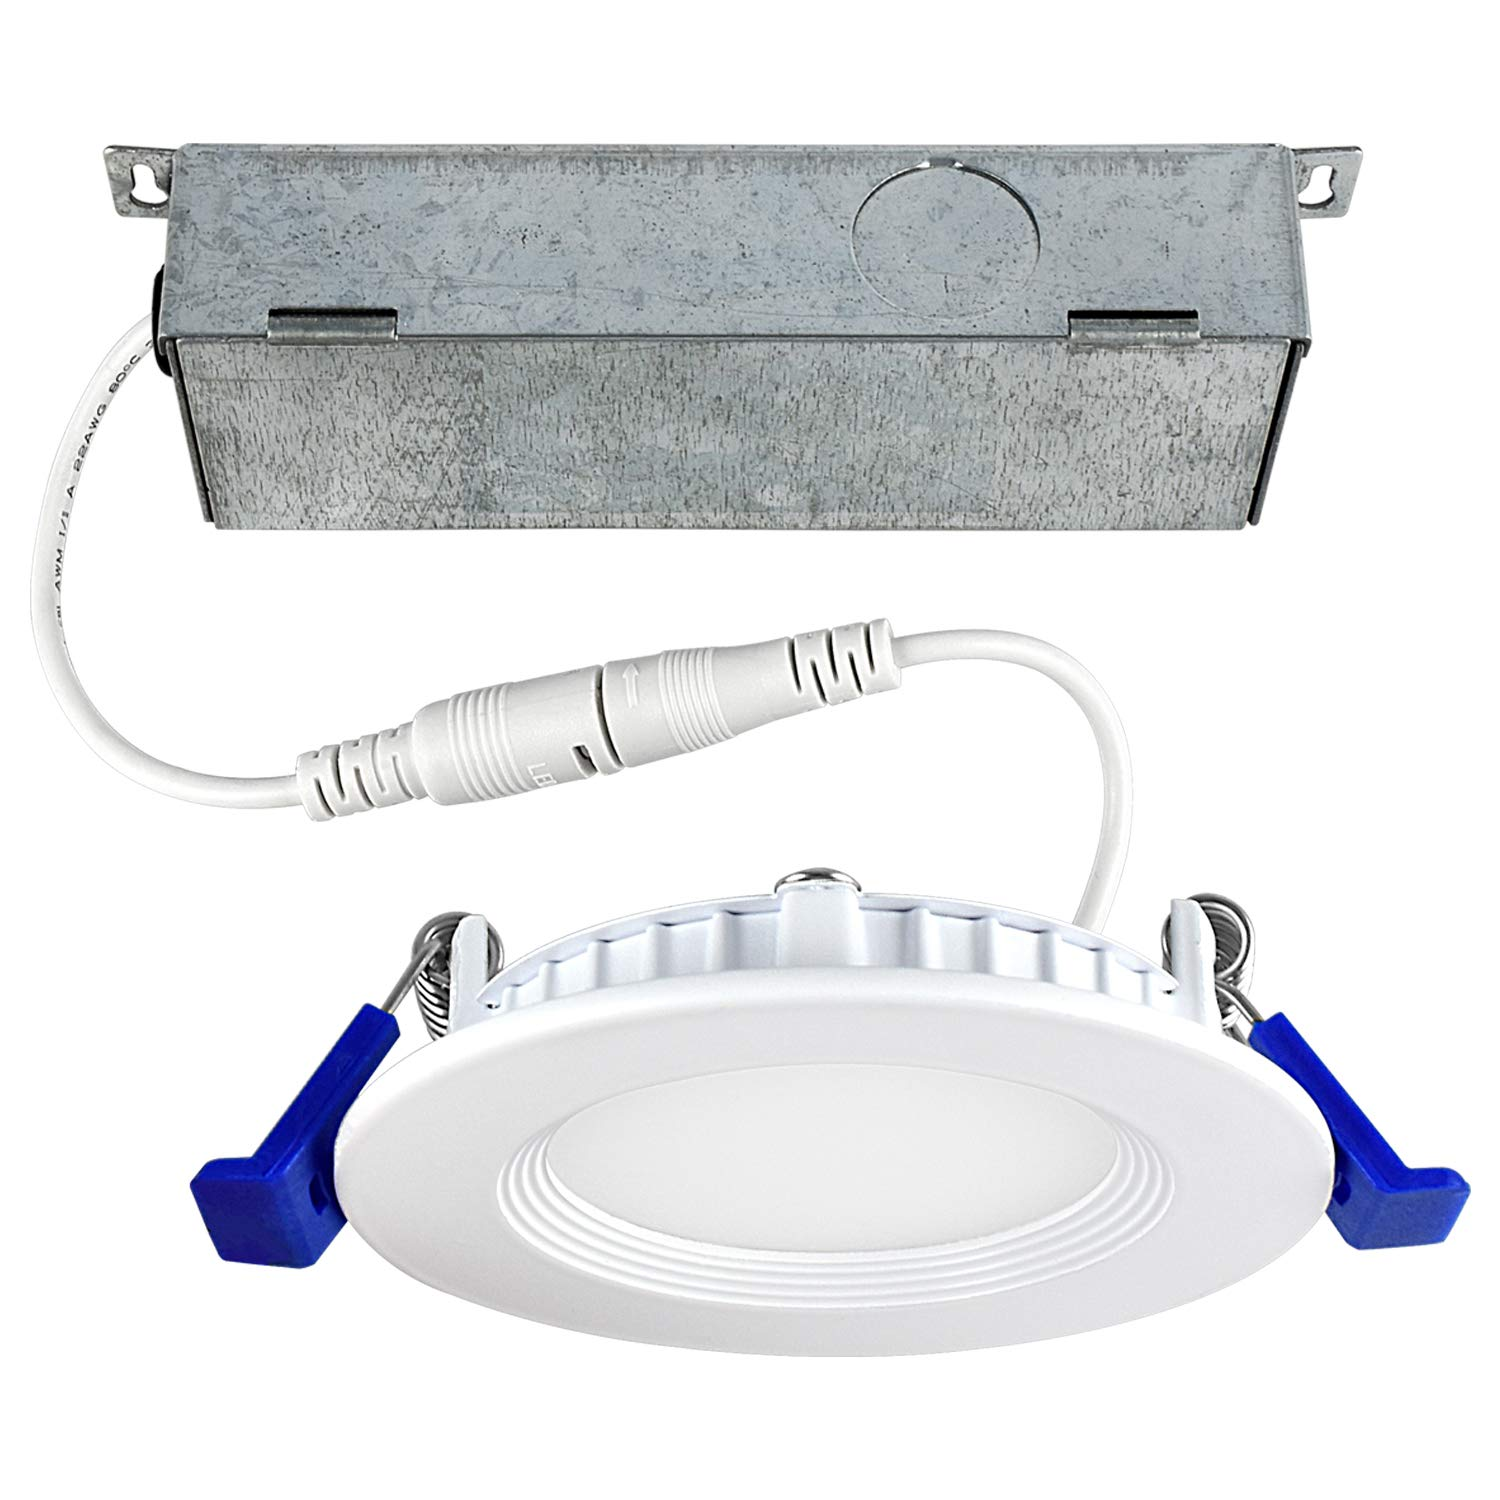 3 Inch Ultra Thin LED Recessed Ceiling Light Fixture, Luxrite, 7W, 5000K (Bright White), 450 Lumens, Dimmable, Low Profile Recessed Downlight, ETL & IC Rated - Perfect for Home Lighting and Remodel